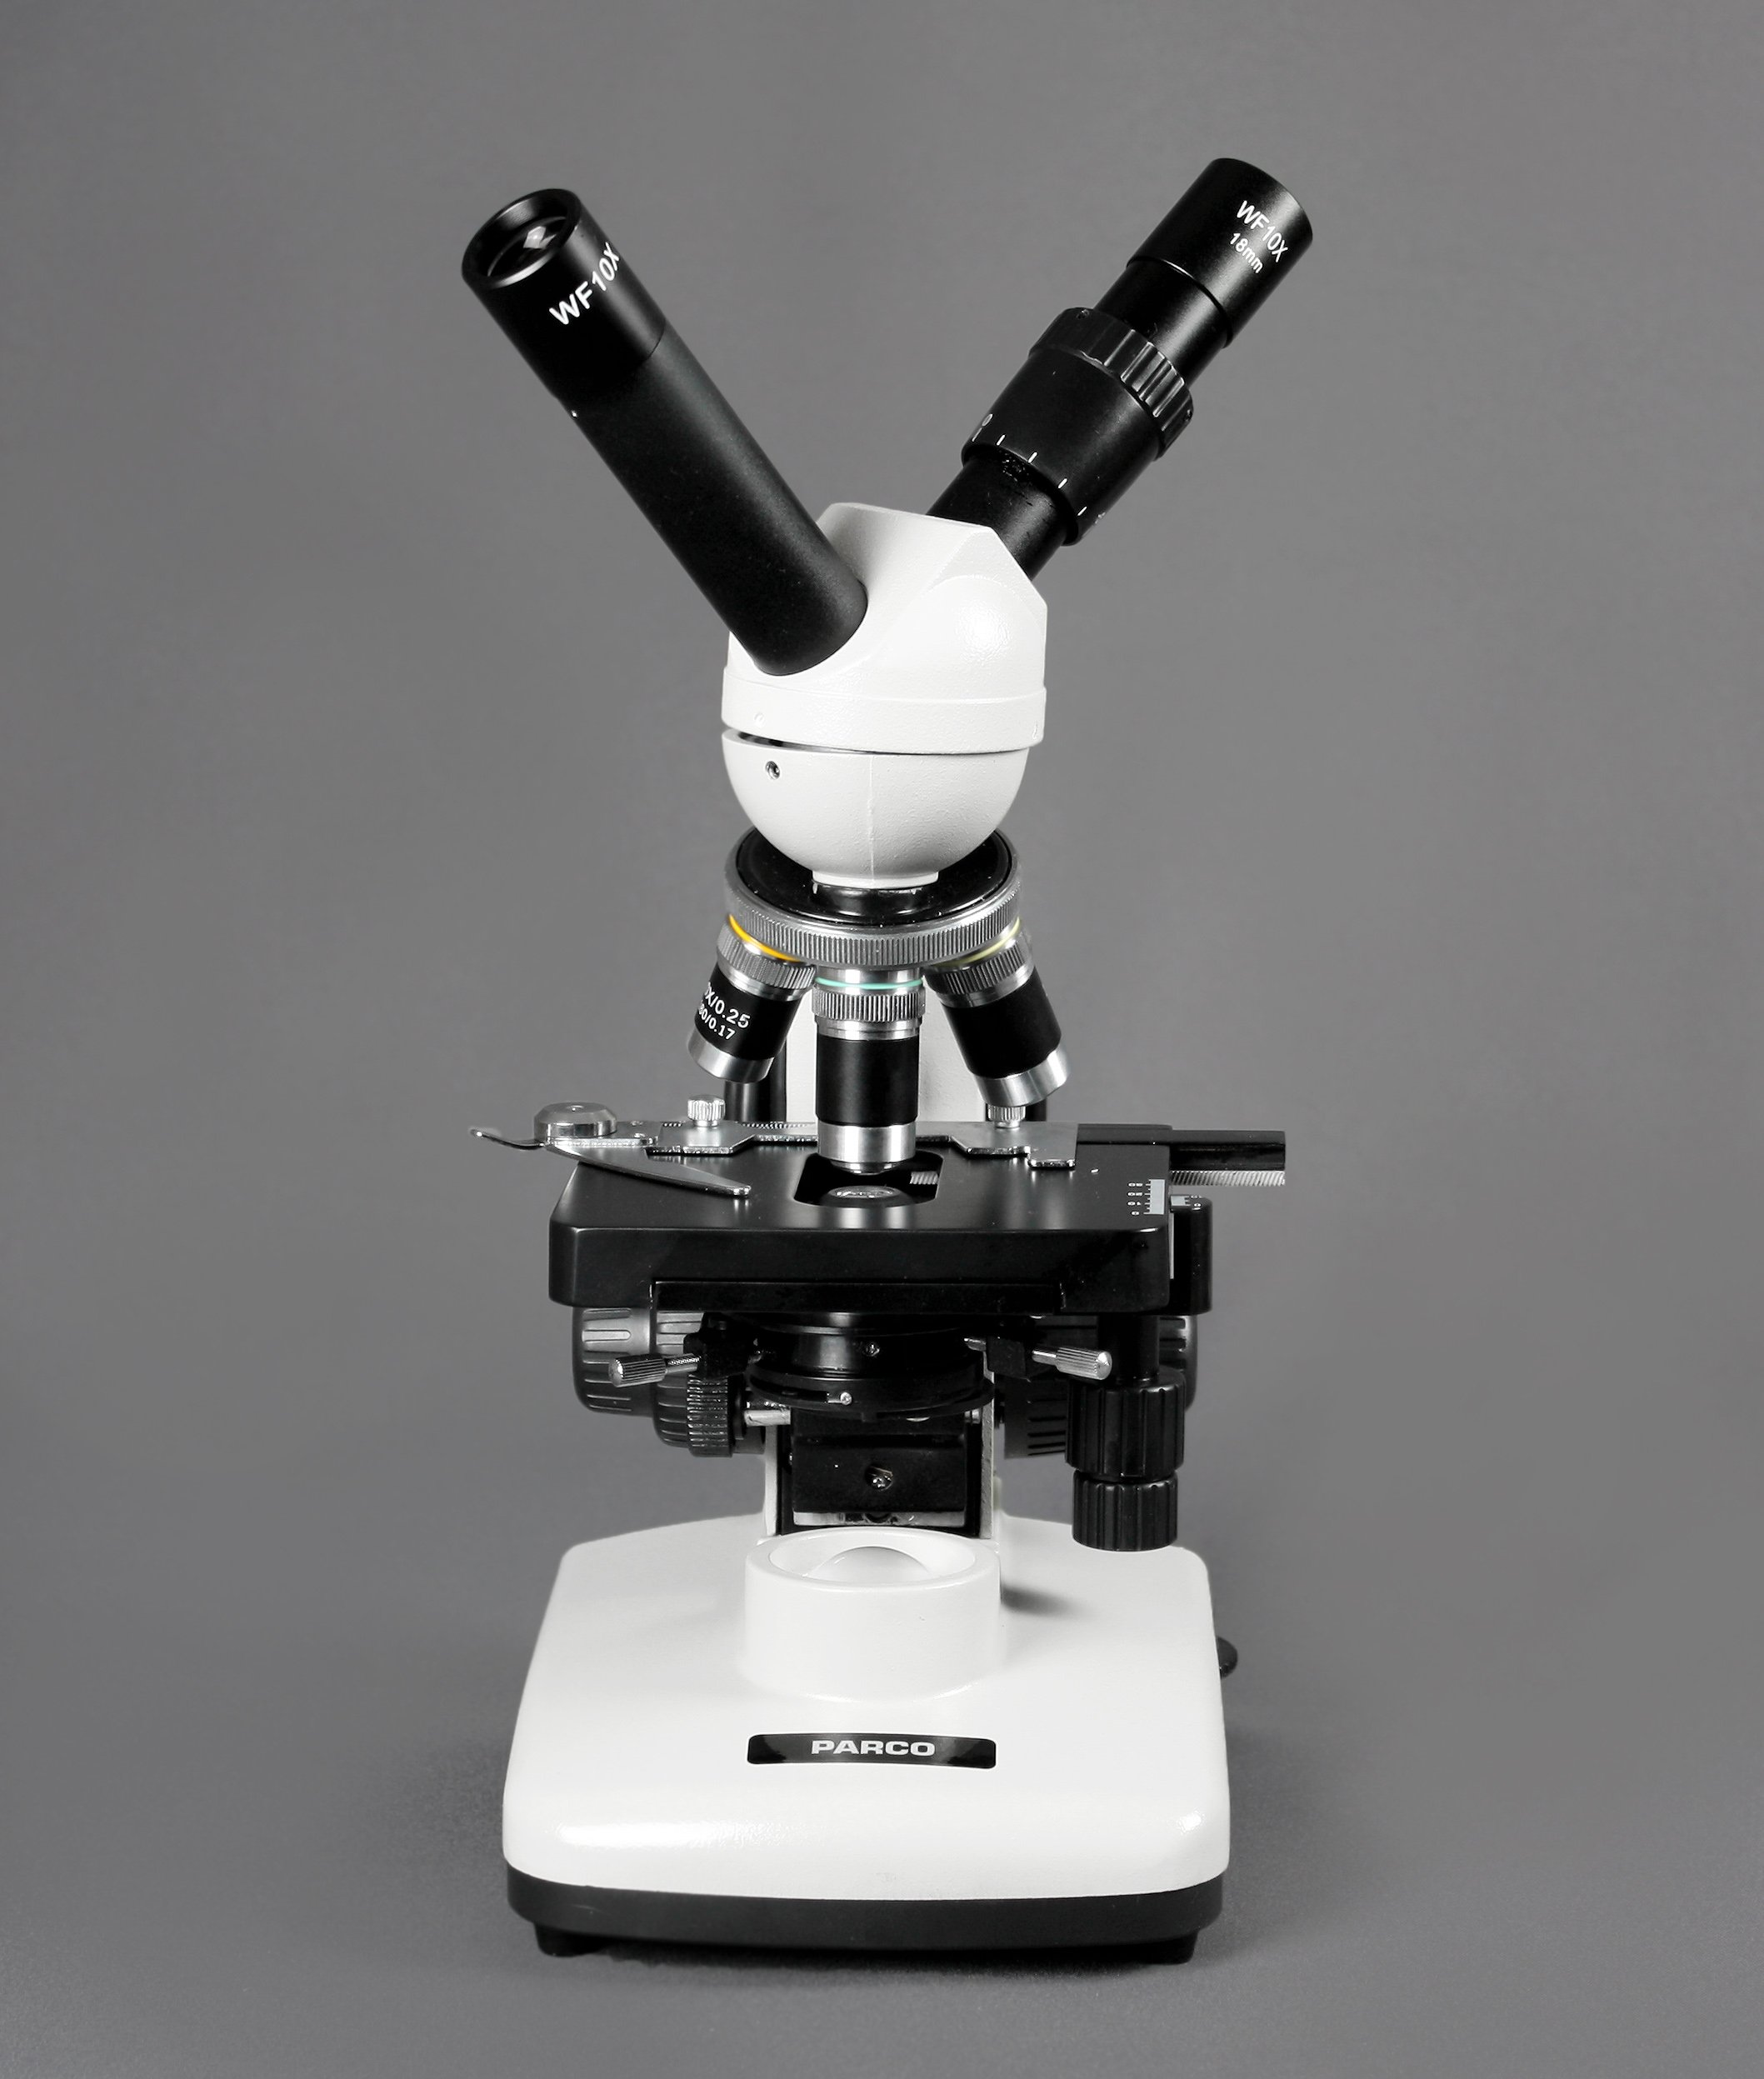 Parco Scientific PBS-500 Dual View Compound Microscope, 10x WF Eyepiece, 40x—1000x Magnification, LED Illumination, 1.25 NA Abbe Condenser, Coaxial Coarse & Fine Focus, Mechanical Stage by Parco Scientific (Image #2)